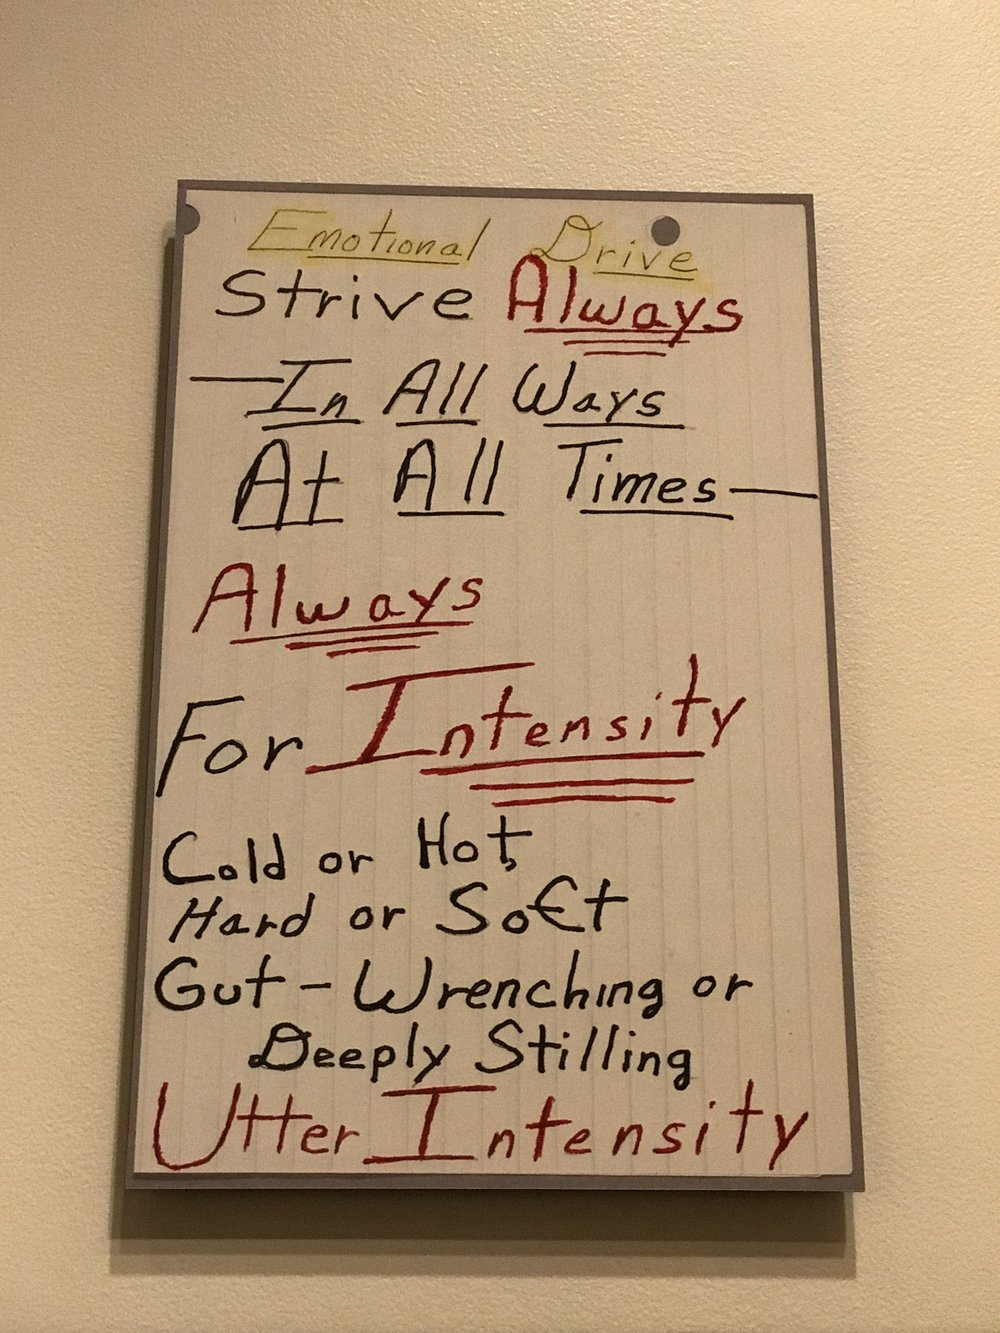 Emotional Drive..Strive ALWAYS In All Ways At All Times ALWAYS For INTENSITY Cold or Hot, Hard or Soft, Gut-Wrenching or Deeply Stilling, UTTER INTENSITY.    Octavia Black, Writer from the Huntington Library Exhibit      Photo: Lynne Azpeitia